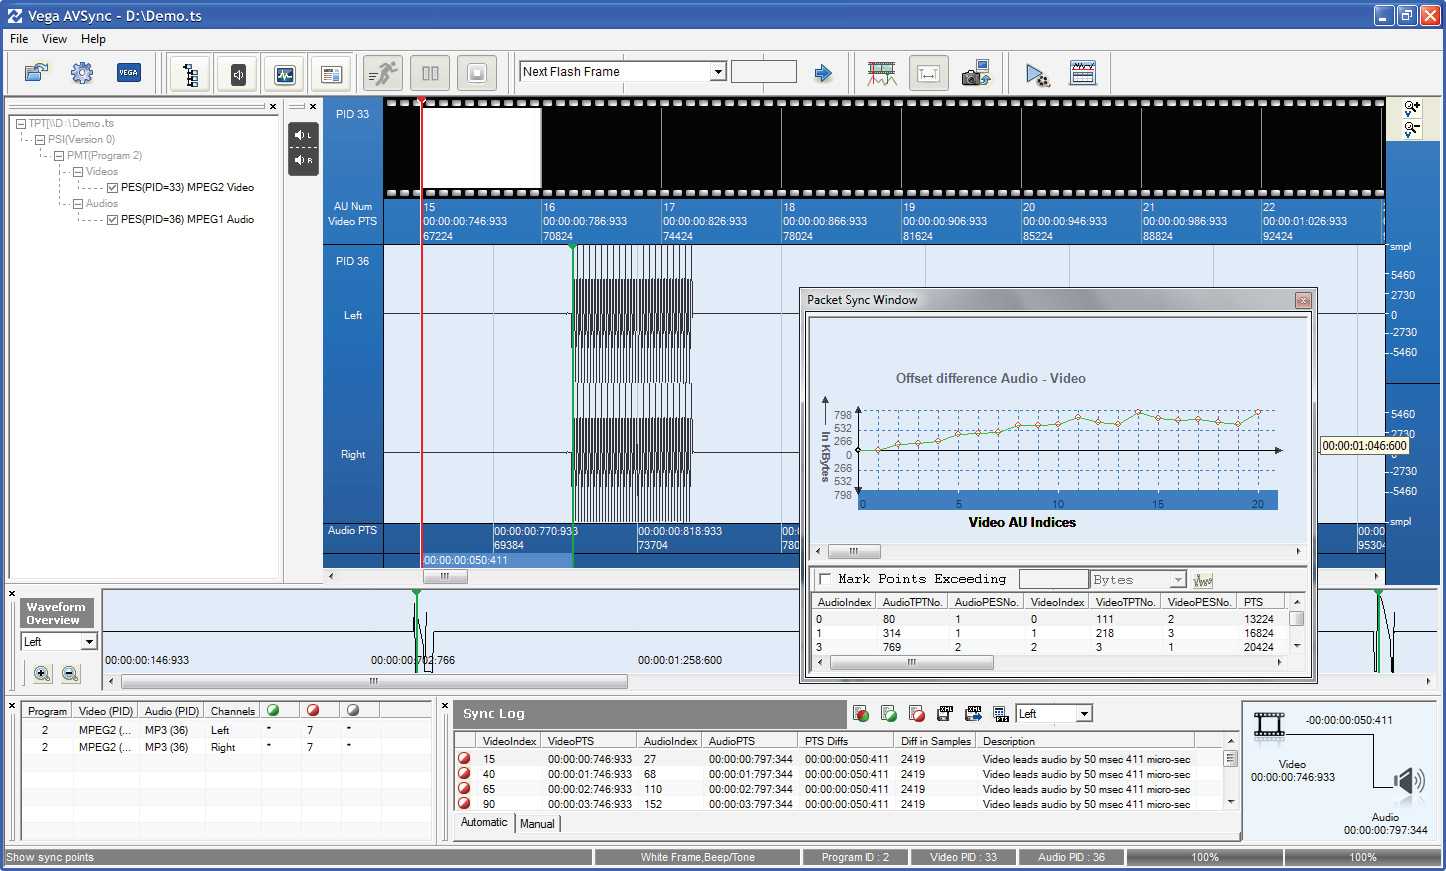 HEVC Analyzer